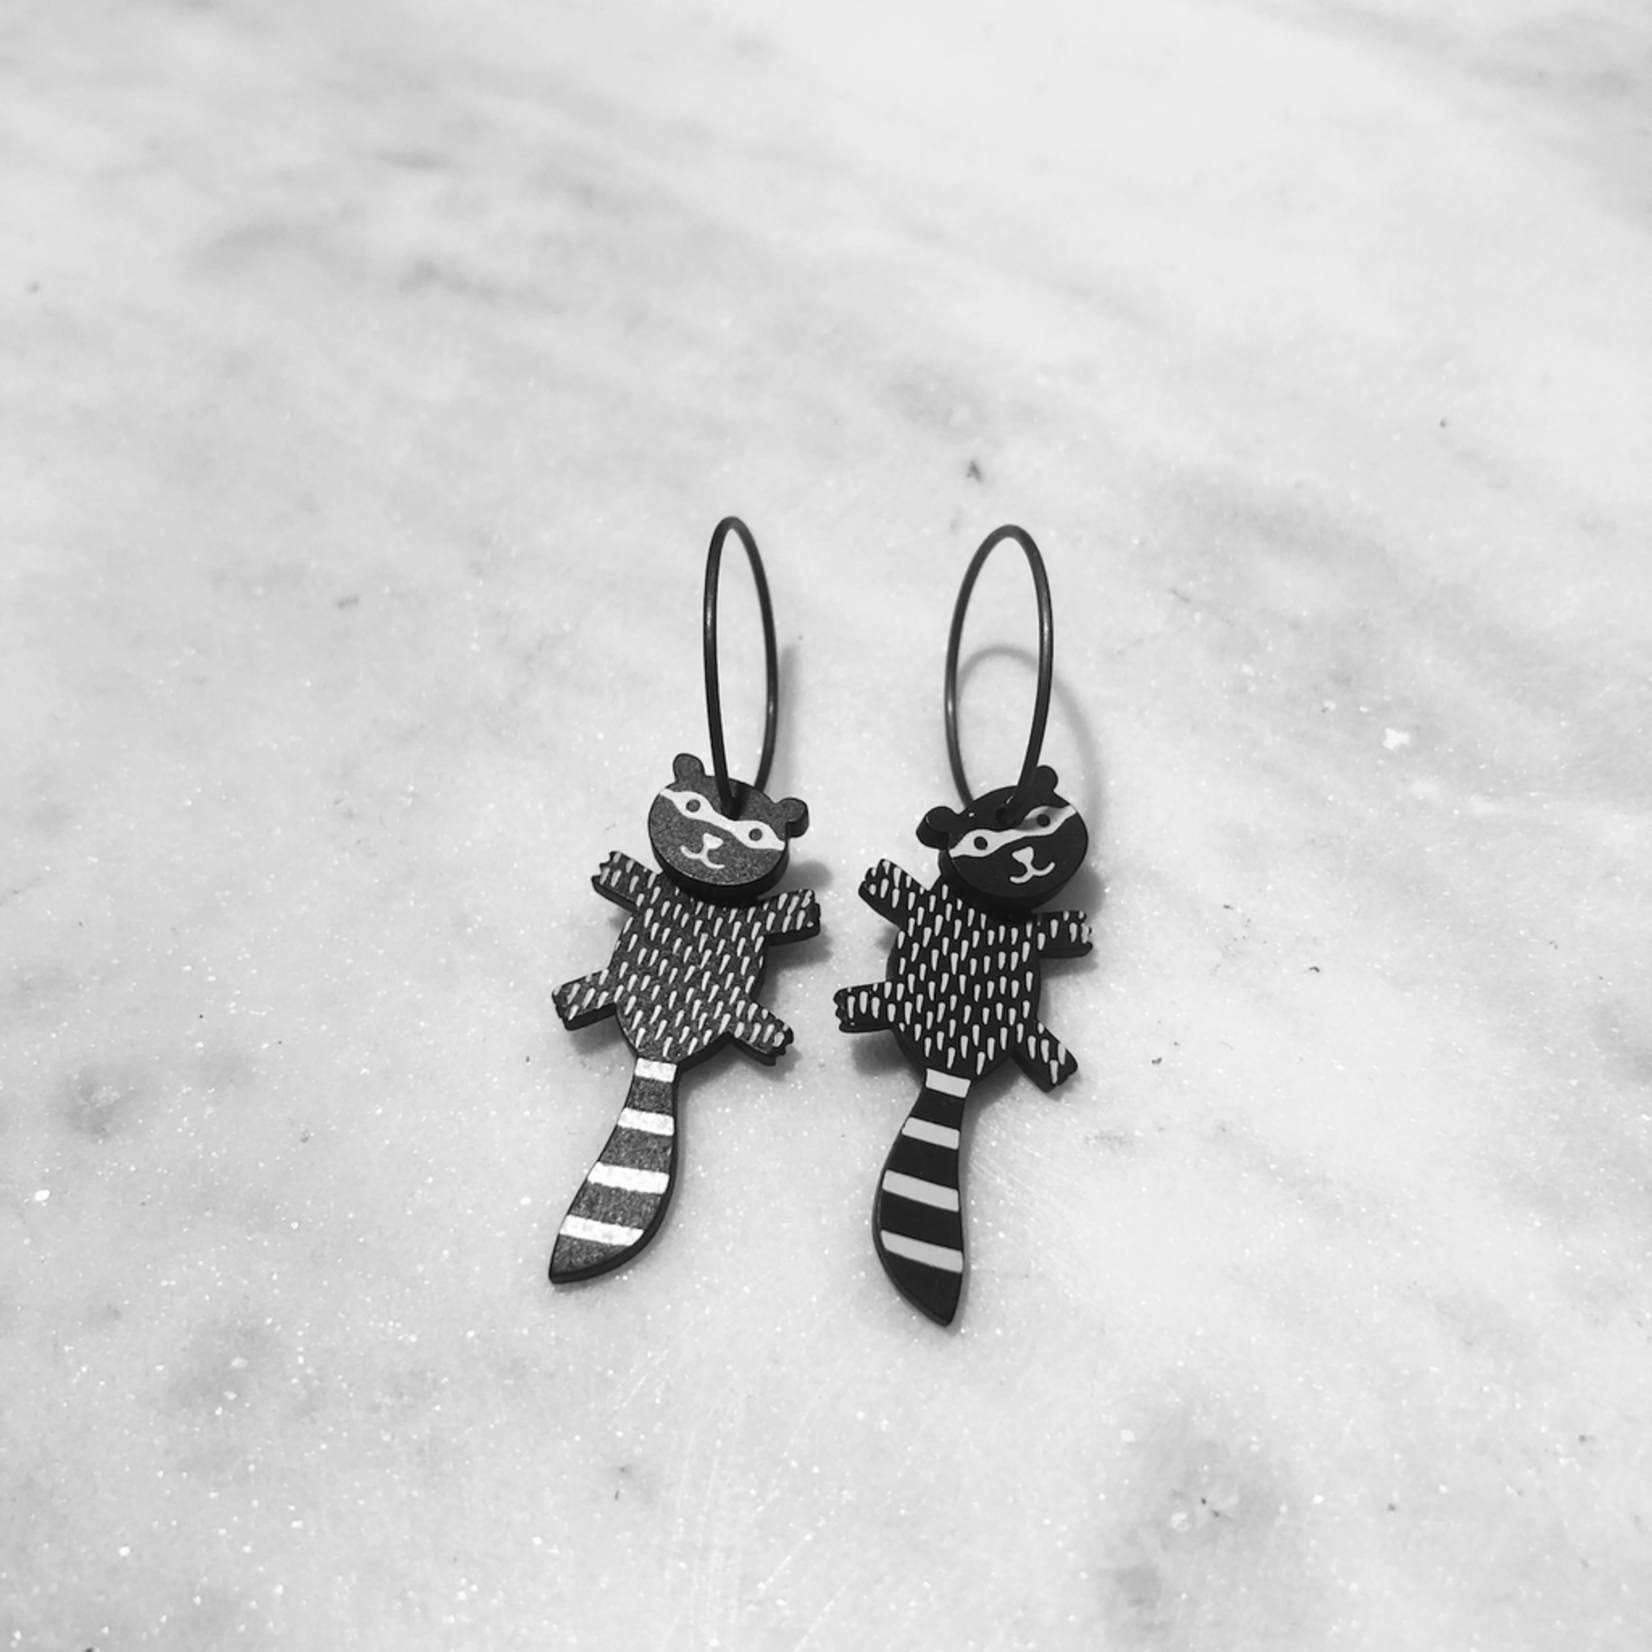 Lene Lundberg Black Racoon with White Spots and stripes Earrings